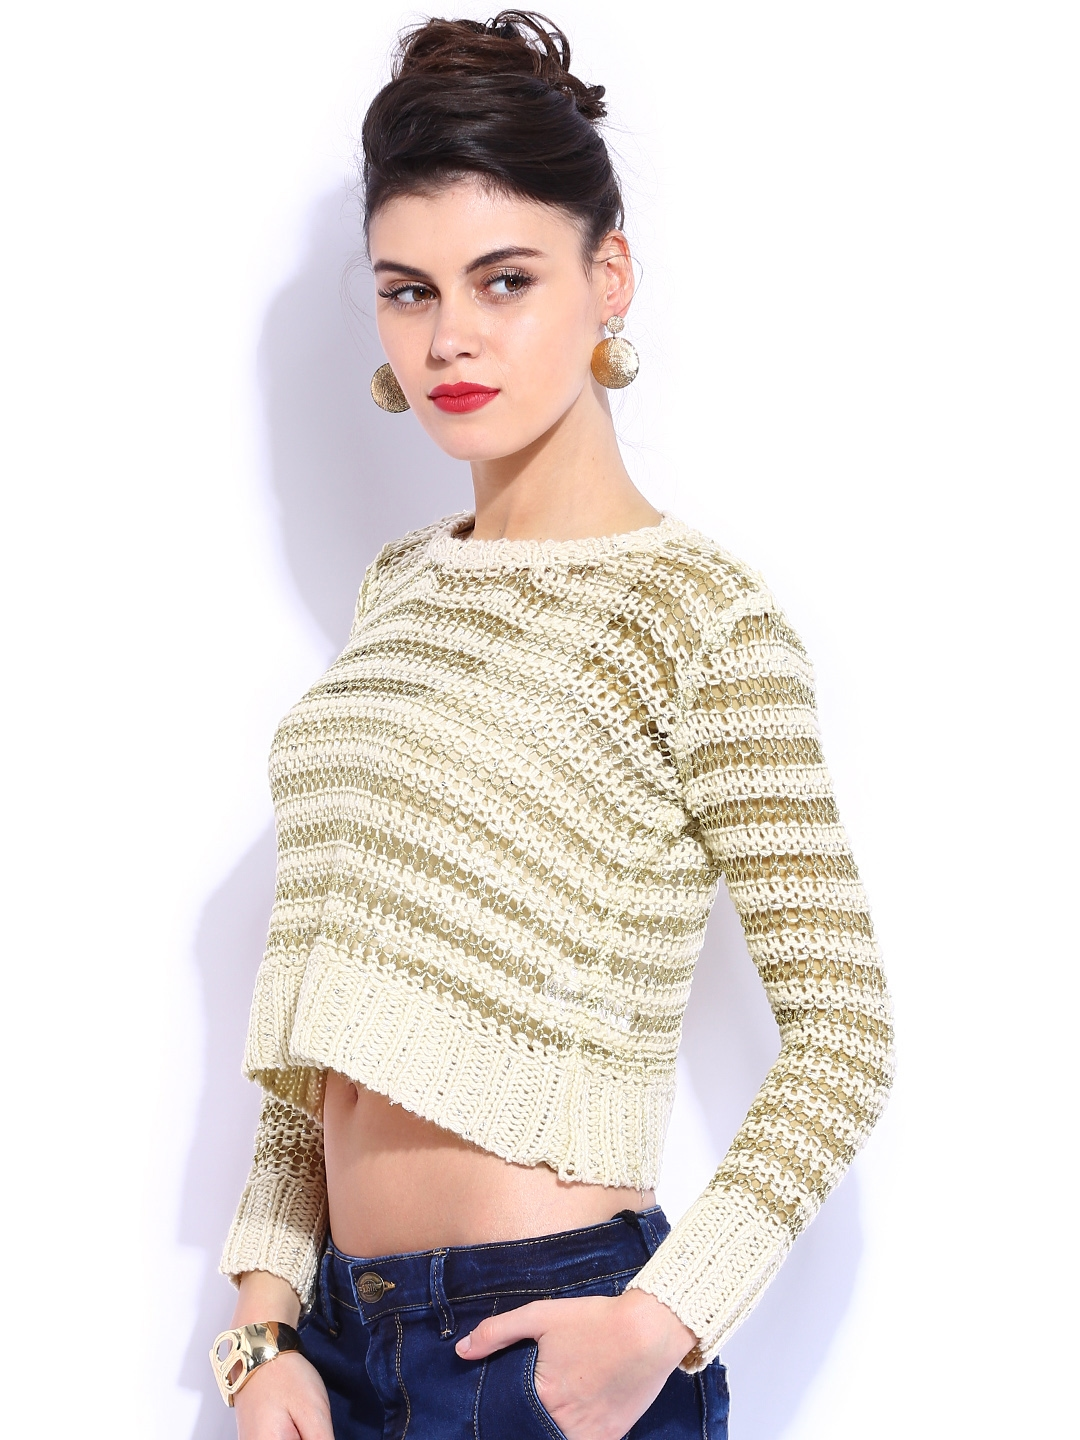 609d6dcd81 Buy D Muse By DressBerry Beige   Gold Toned Sweater - Sweaters for ...